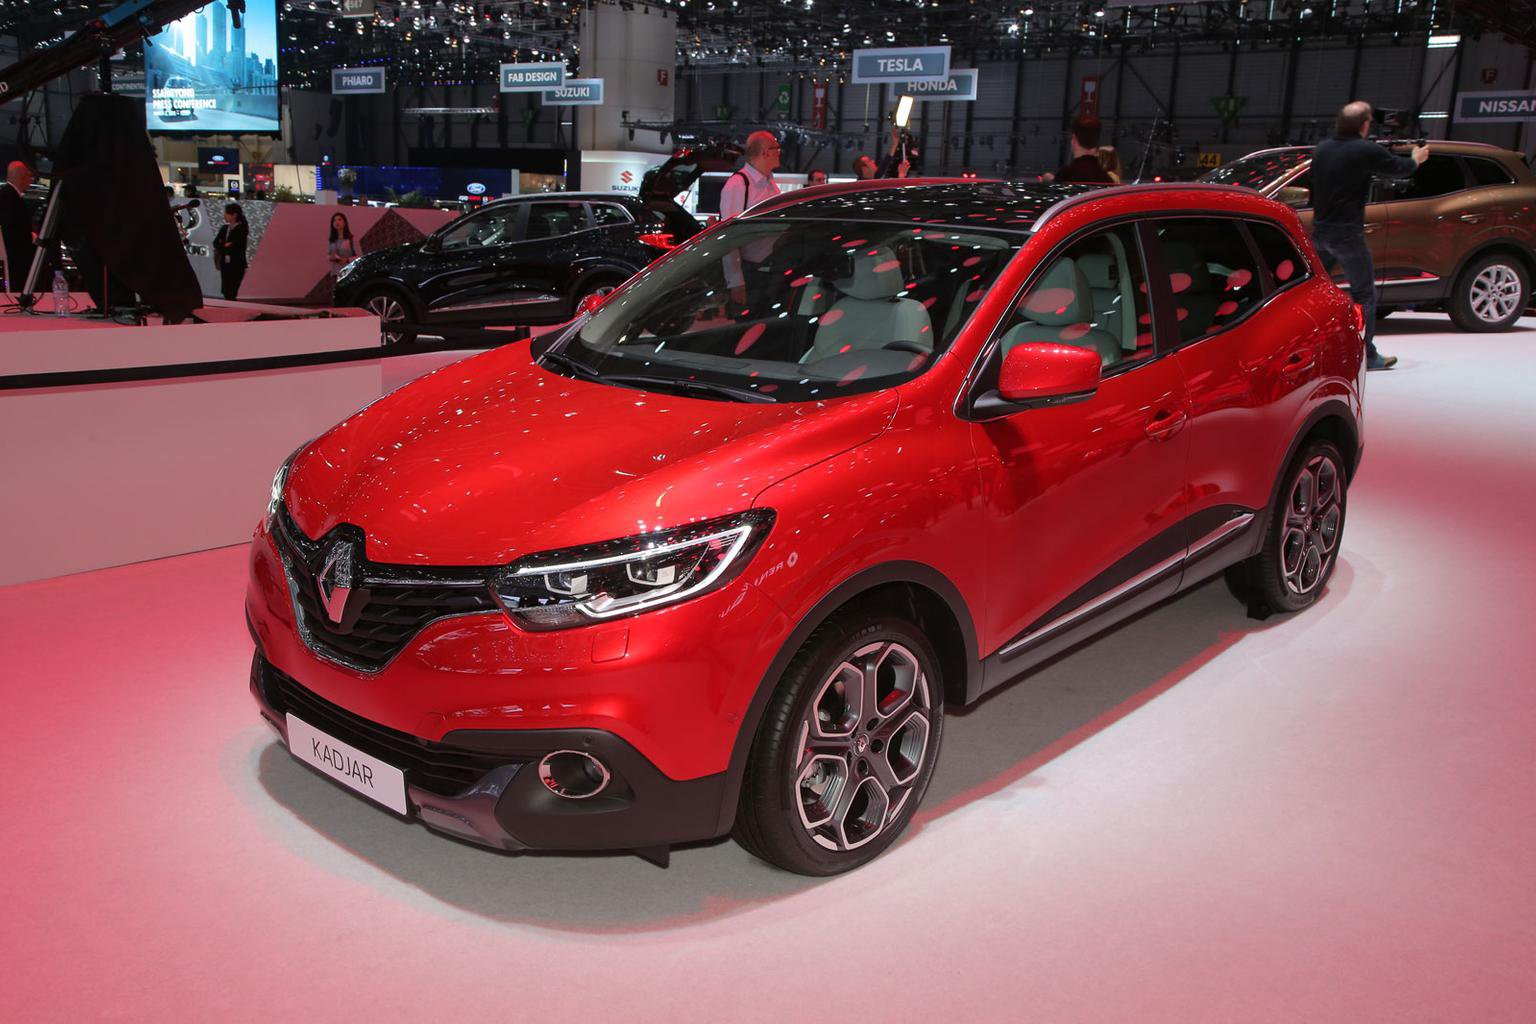 Be the first to see the Renault Kadjar in the UK